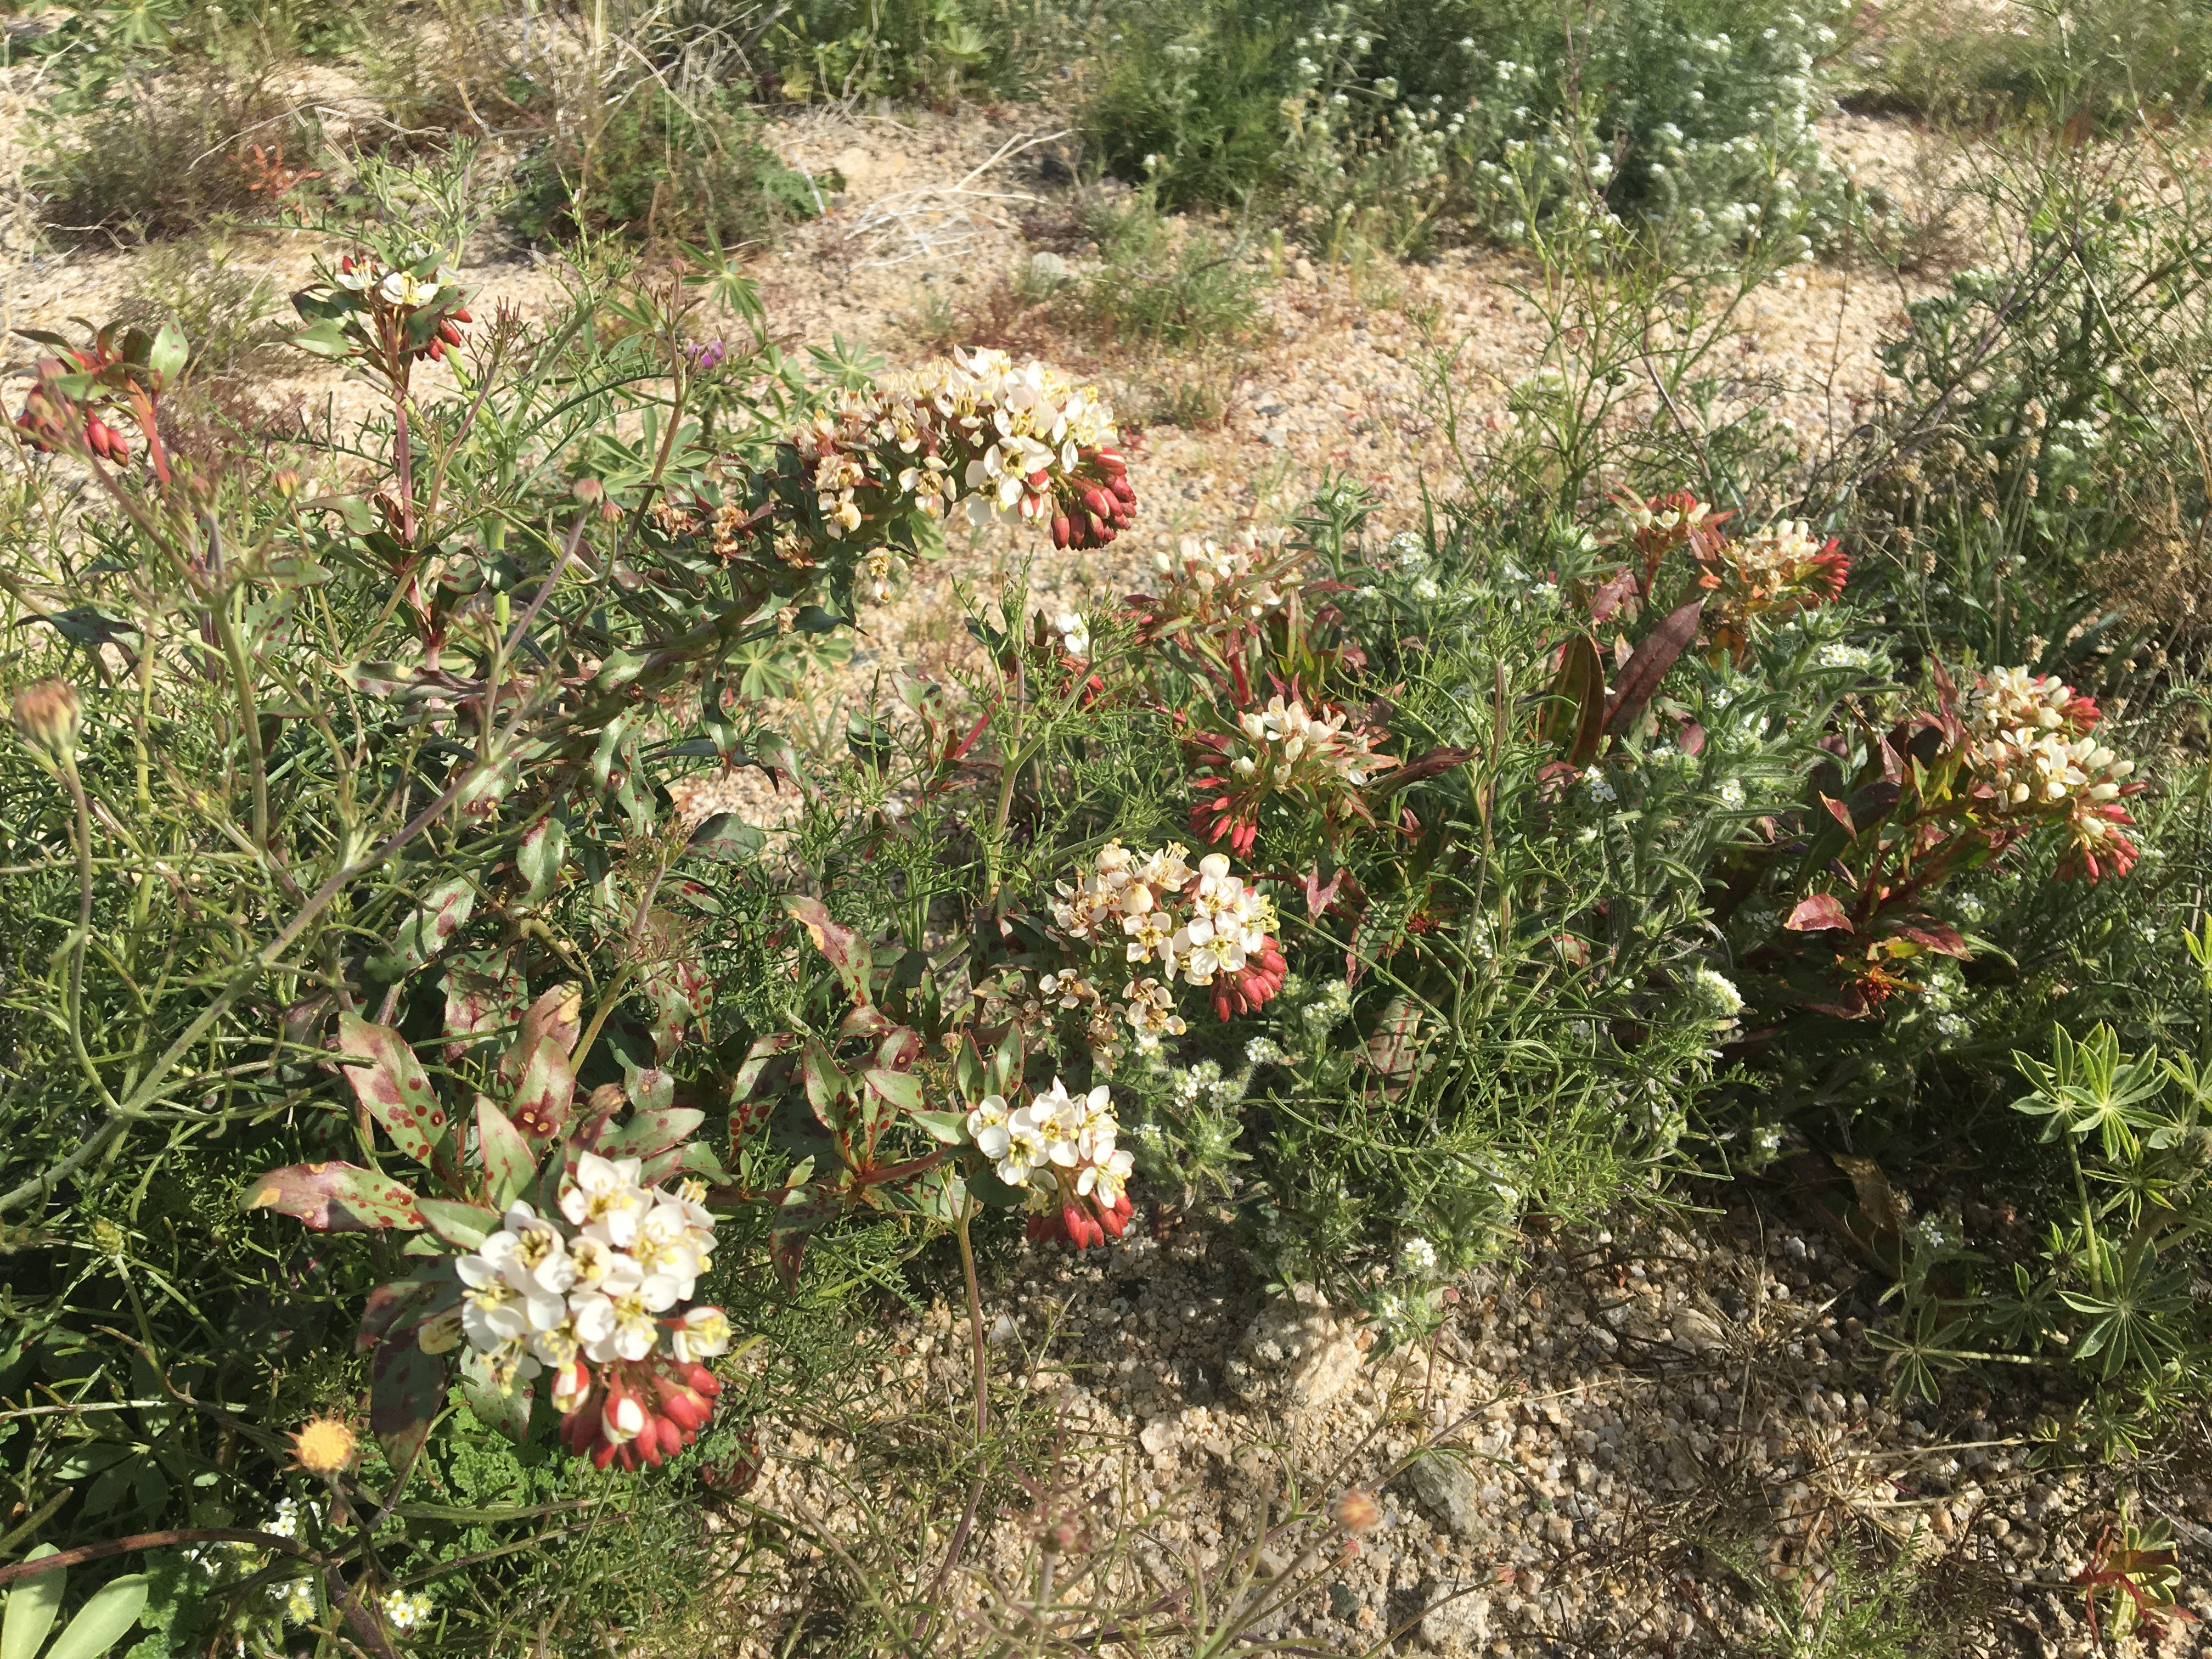 Wildflowers are blooming across the desert thanks to recent rainstorms. These flowers are south of Interstate 10 at Cottonwood Springs Road, east of Cactus City.